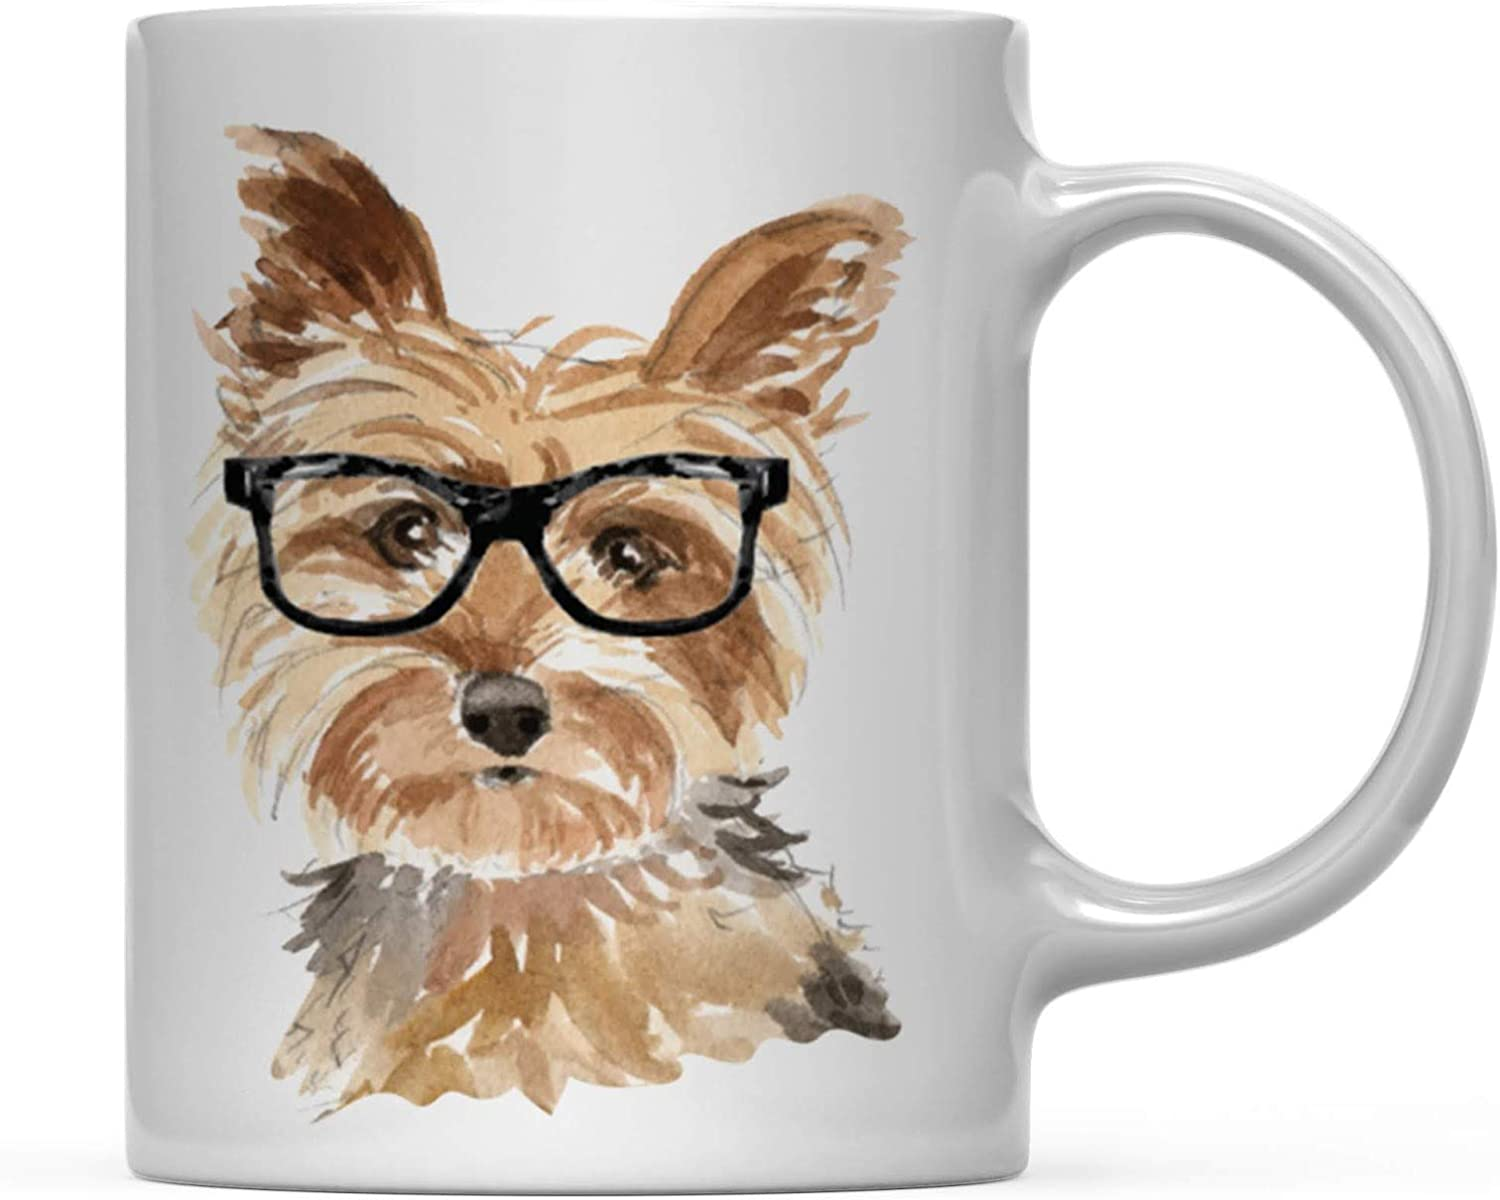 Amazon Com Andaz Press Funny Preppy Dog Art 11oz Coffee Mug Gift Yorkshire Terrier In Black Glasses 1 Pack Christmas Birthday Present Ideas For Him Her Dog Lover Health Personal Care